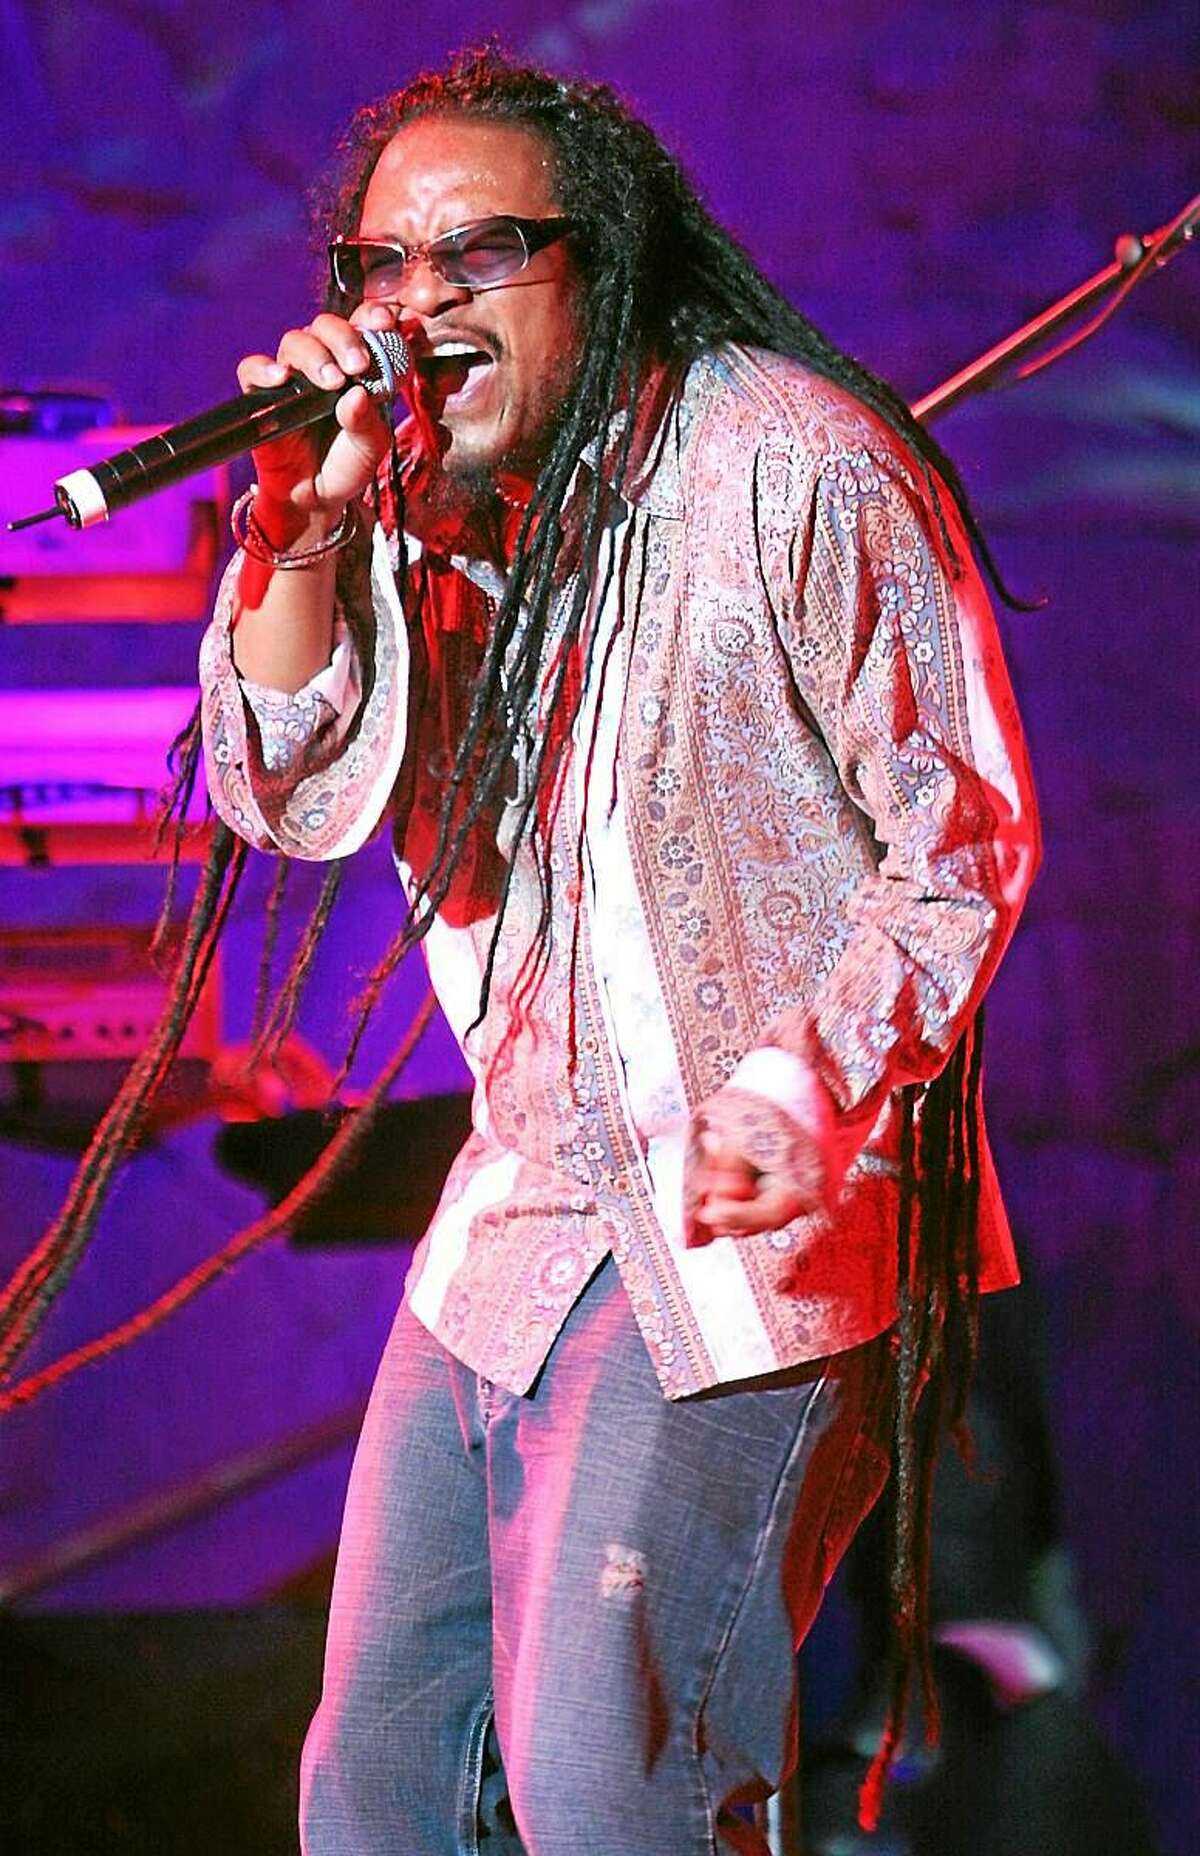 Photo by John Atashian Heart and Soul Entertainment will present the ì4th Annual Westside Reggae Festivalî featuring singer Maxi Priest, Marcia Griffith, Freddie McGregor, Yellowman, Fab5, and more at the Ives Concert Park in Danbury on Saturday Aug. 8.